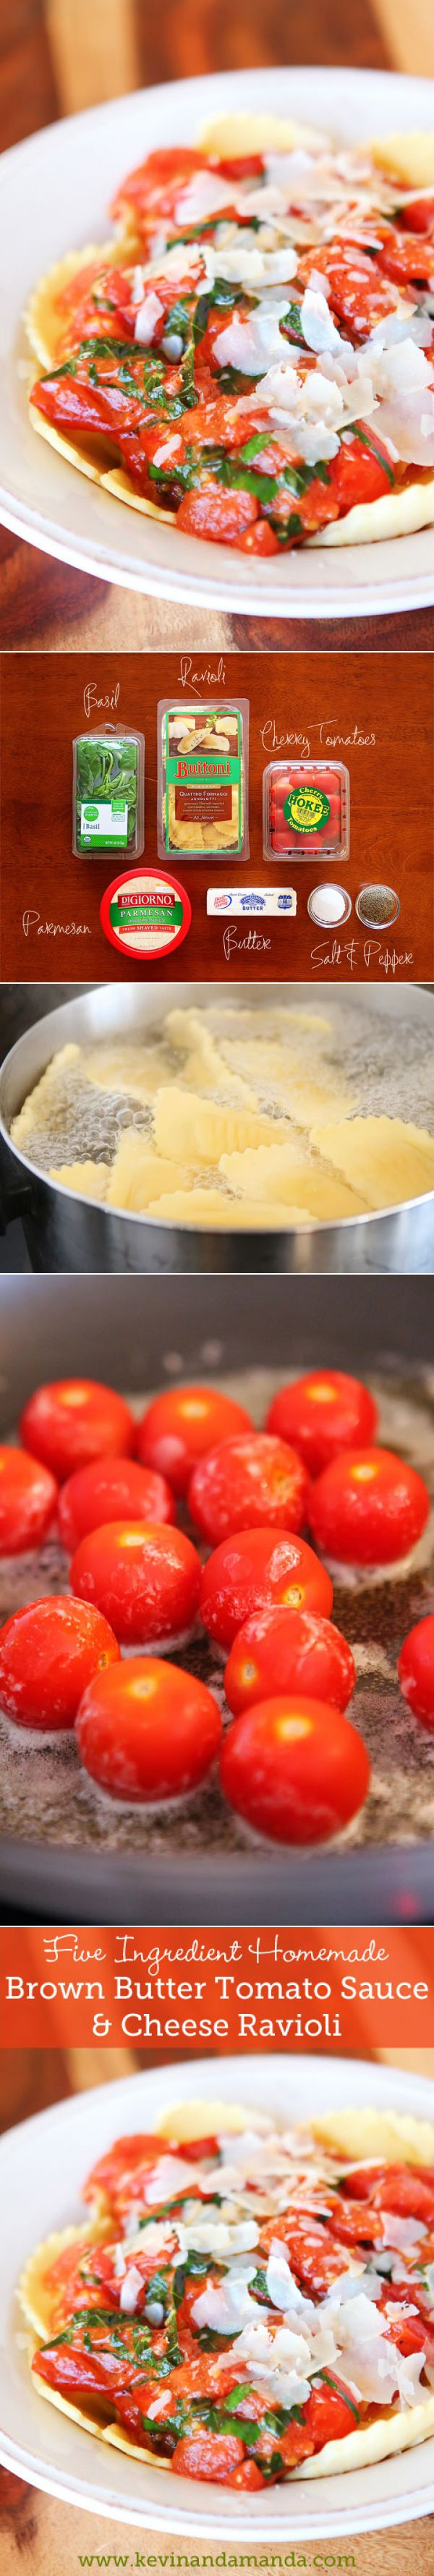 Most authentic tomato sauce ever. Use only tomatoes, basil, butter, salt and pepper. Takes less than 10 mins. Serve over ravioli for a perfect dinner.